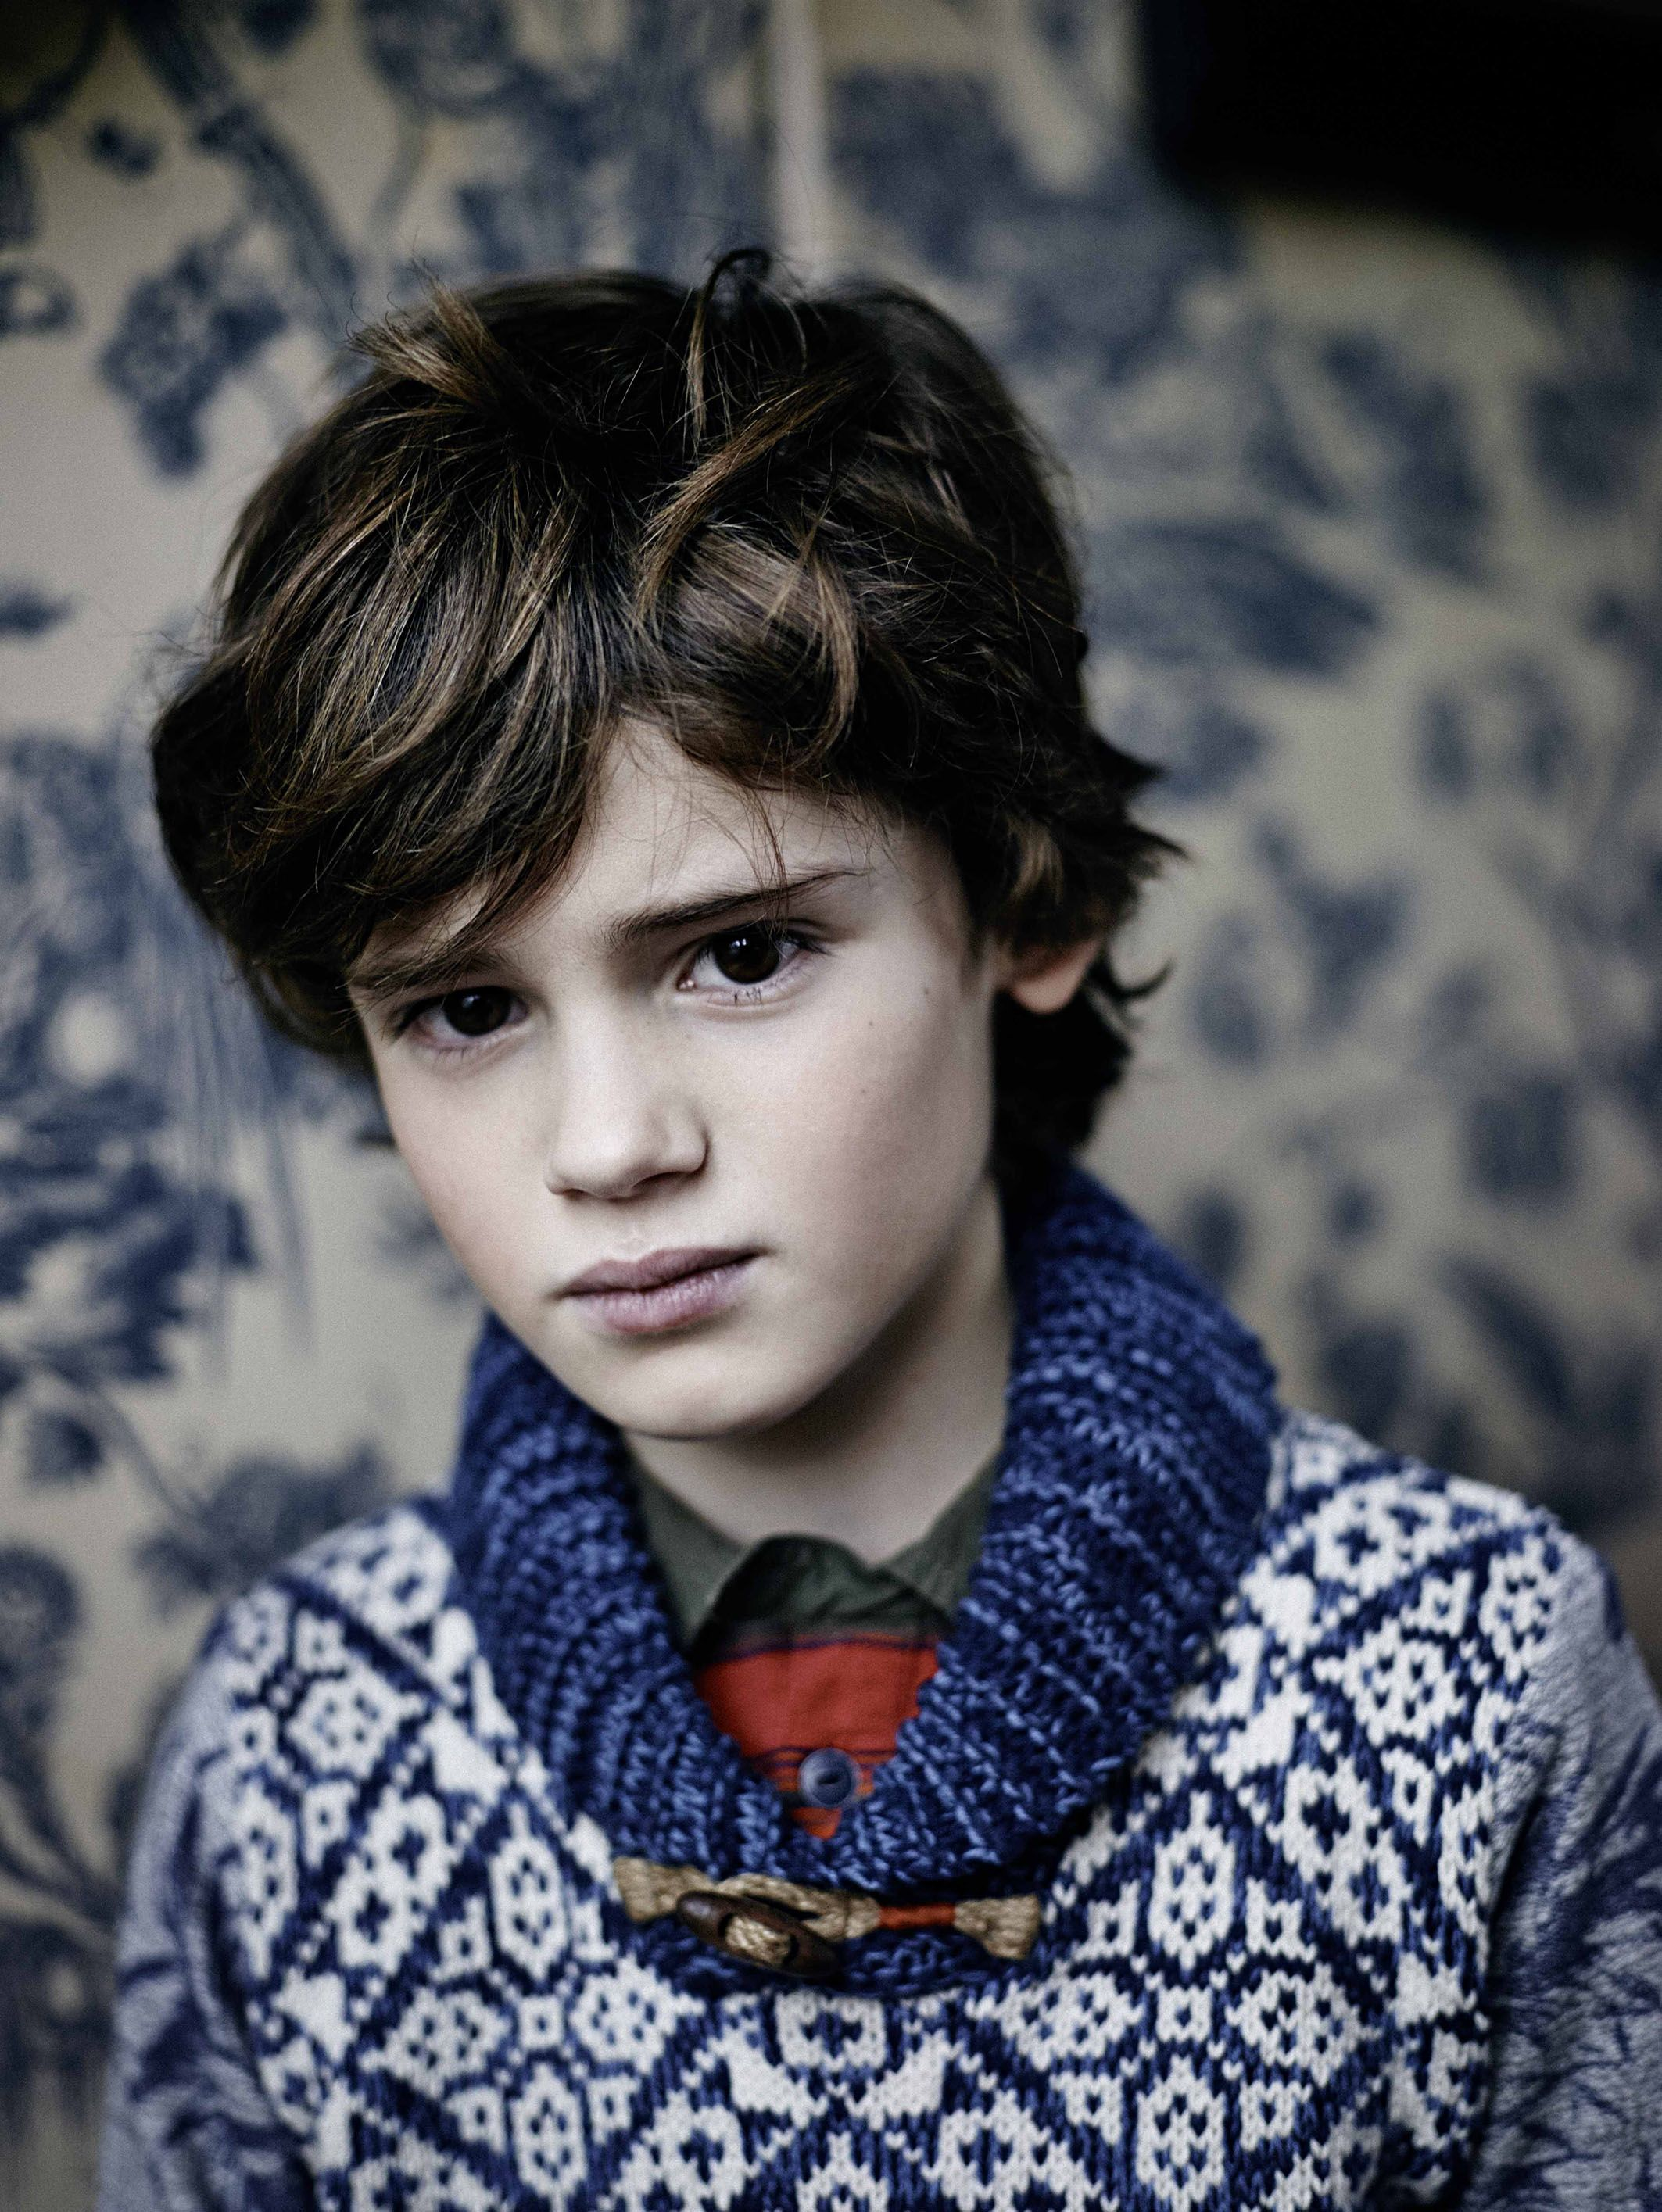 Boy hairstyle look image donut feel the chill but look supercool in scotch shrunkus latest